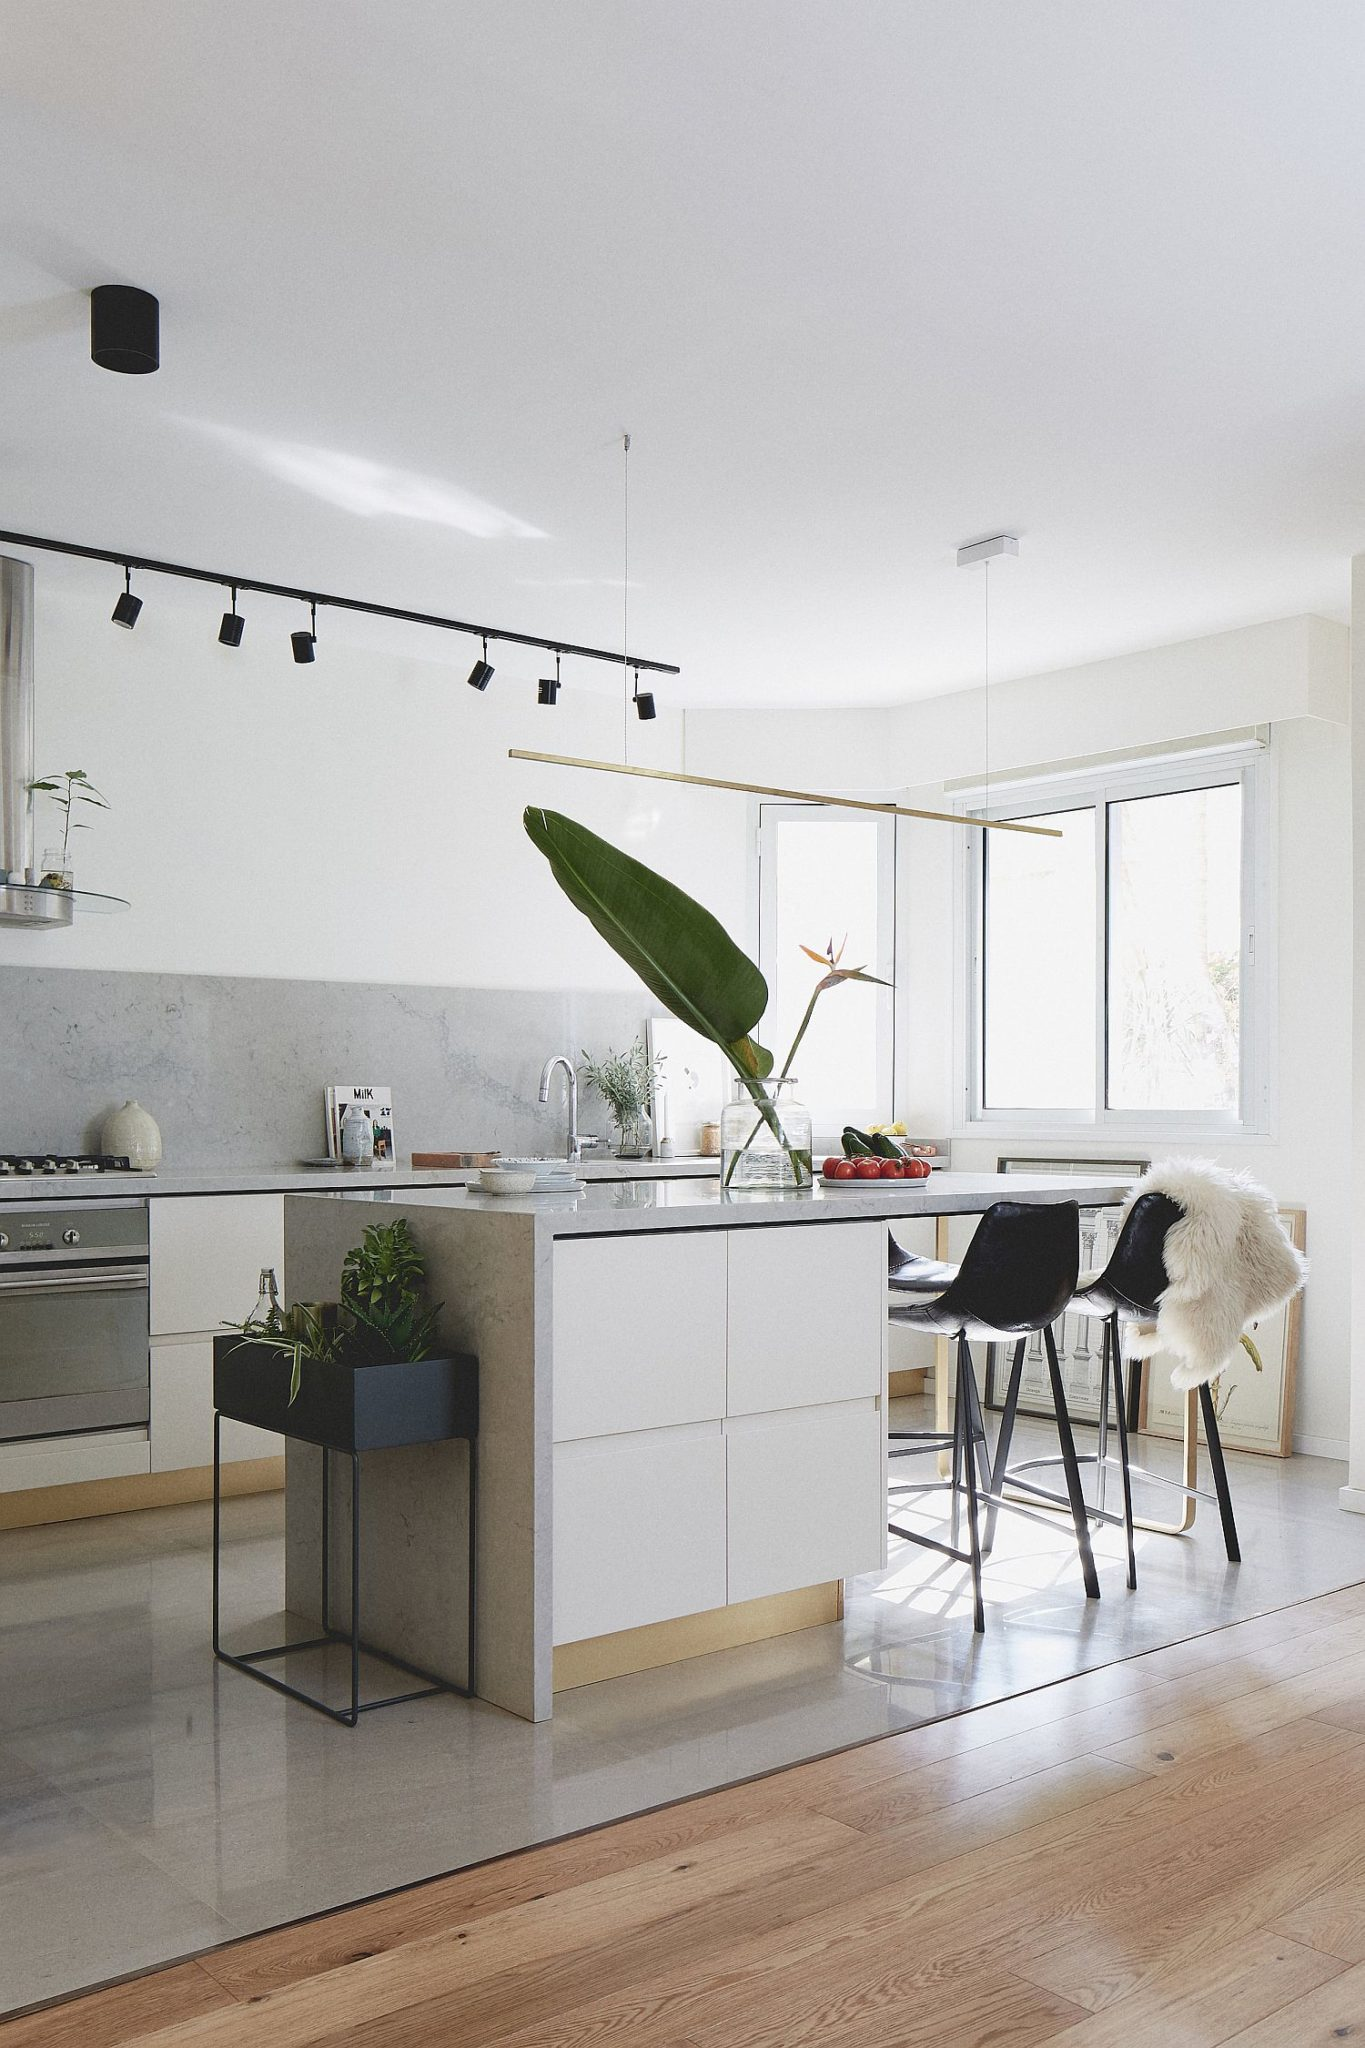 Light colored kitchen with marble, concrete and wooden surfaces